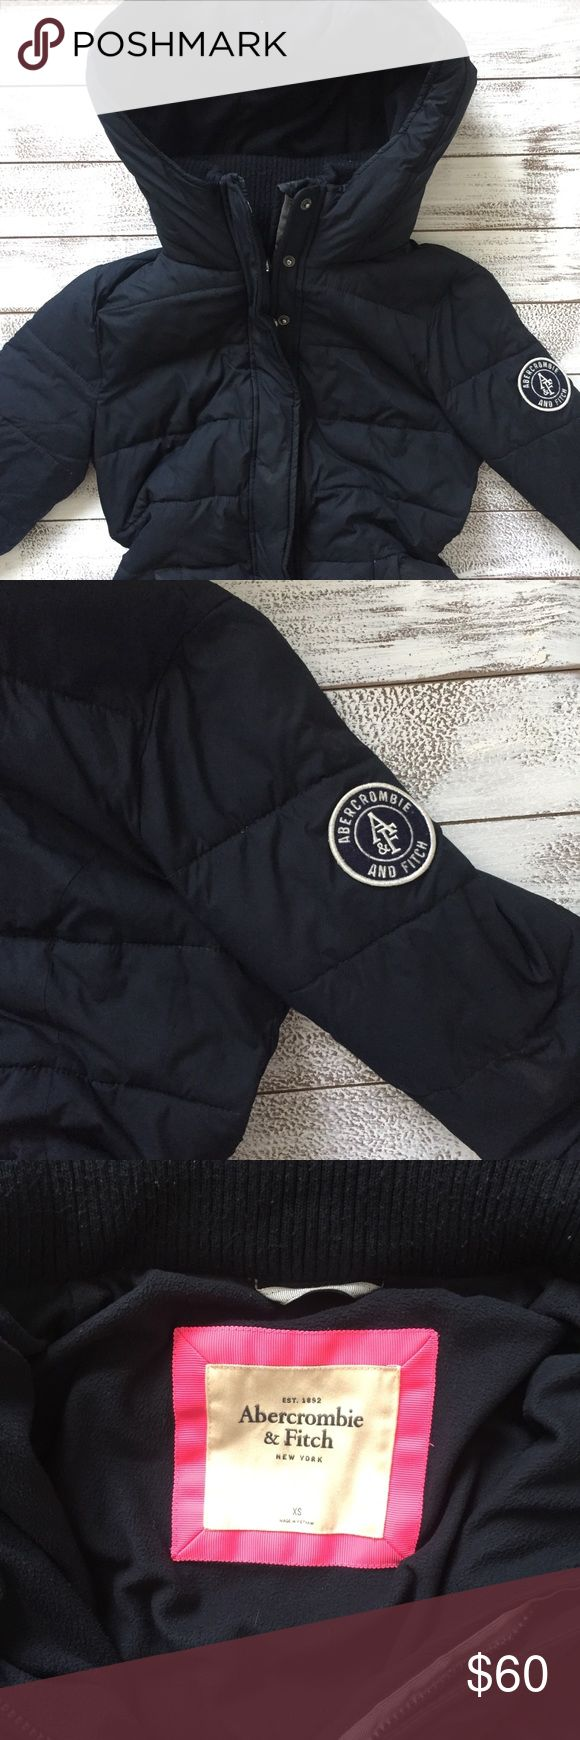 ABERCROMBIE AND FITCH PUFFER JACKET Abercrombie and Fitch navy puffer jacket. Size XS. Navy color. Made in Vietnam. Good used condition. Abercrombie & Fitch Jackets & Coats Puffers